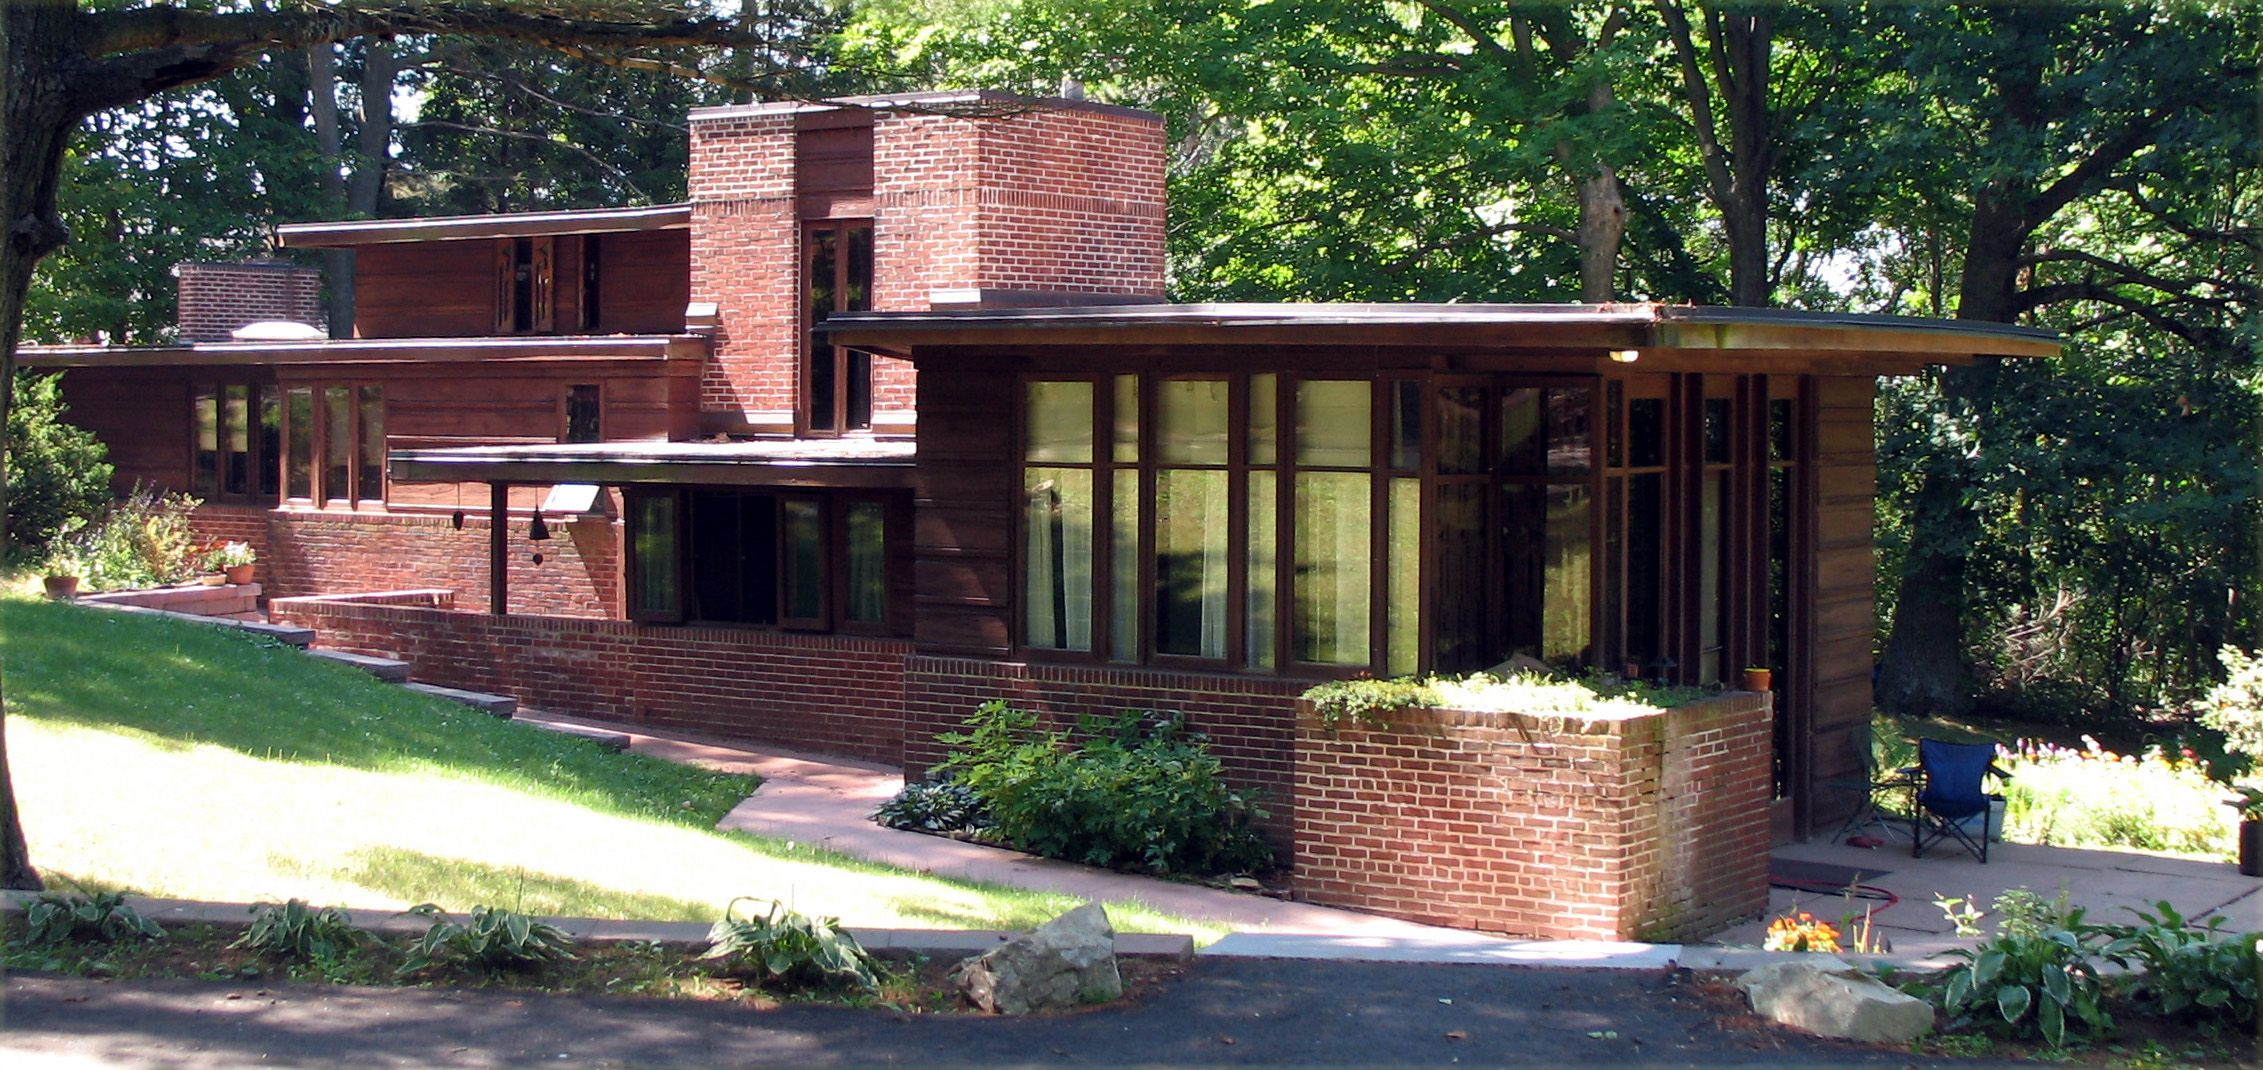 Frank Lloyd Wright Architectural Style charles l. manson house - wikipedia, the free encyclopedia | frank